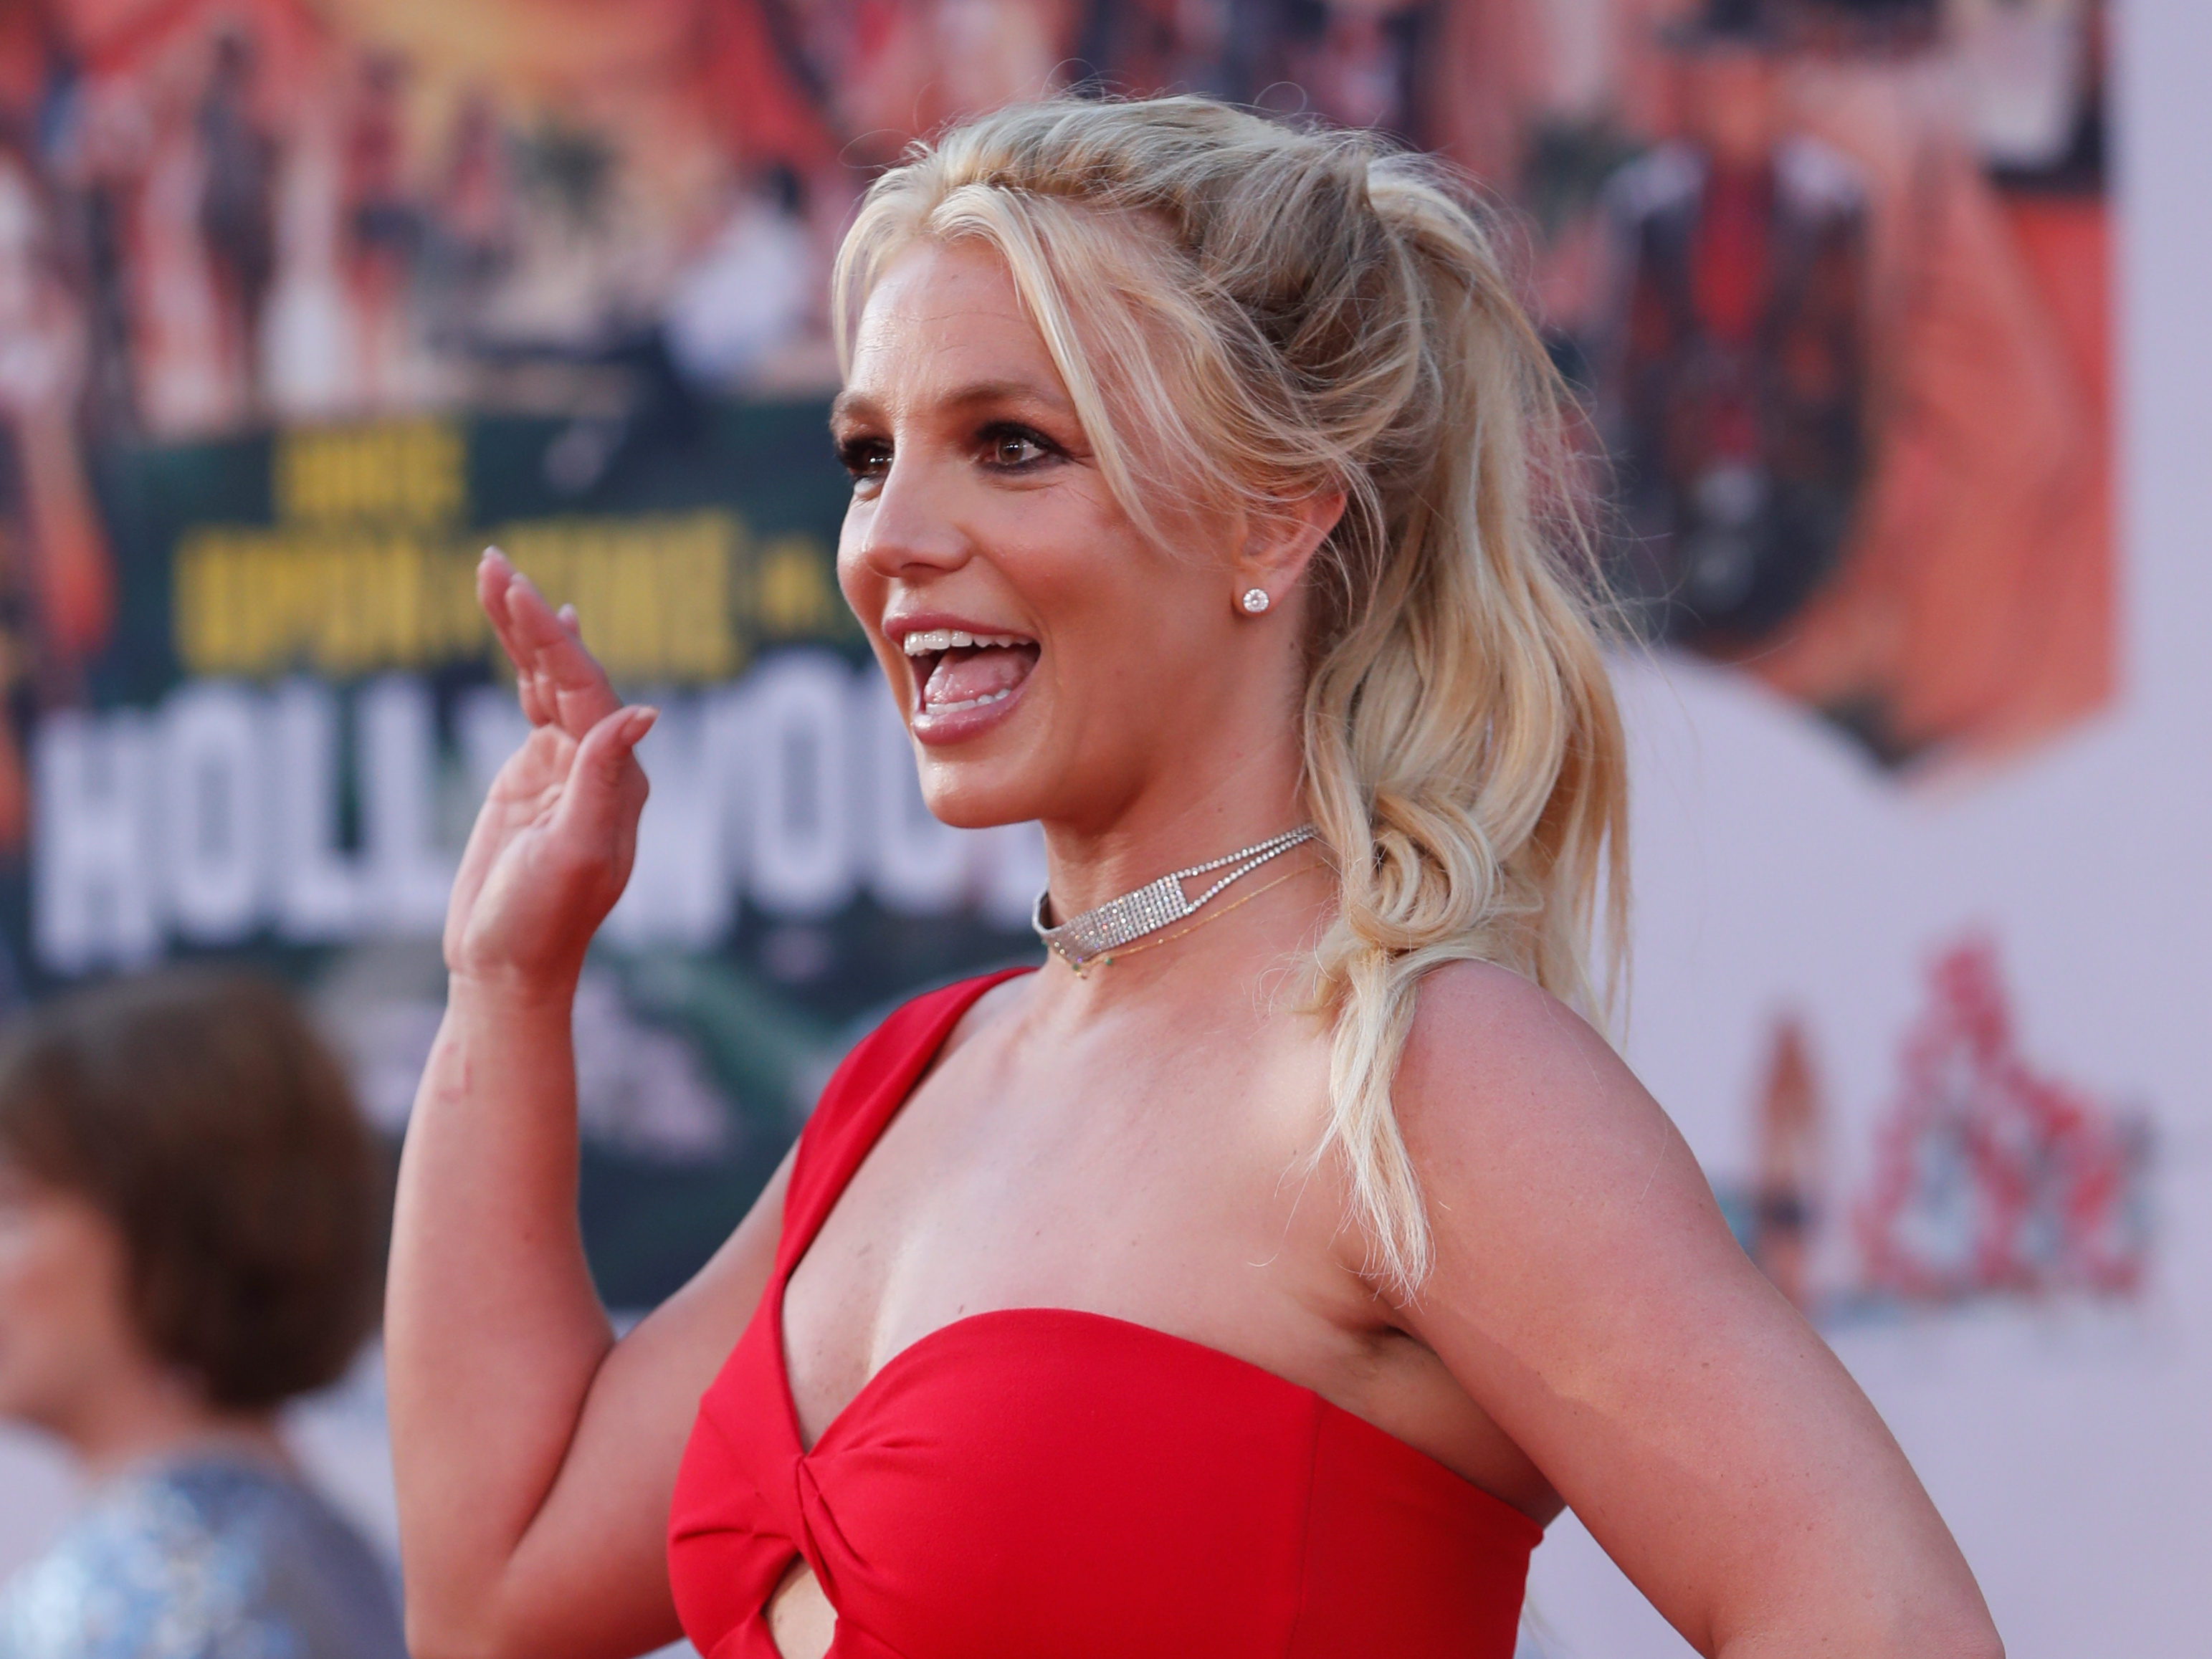 Britney Spears hasn't legally controlled her $59 million fortune in 12 years. Here is how the pop icon makes and spends her money, from Target browsing journeys to California mansions.